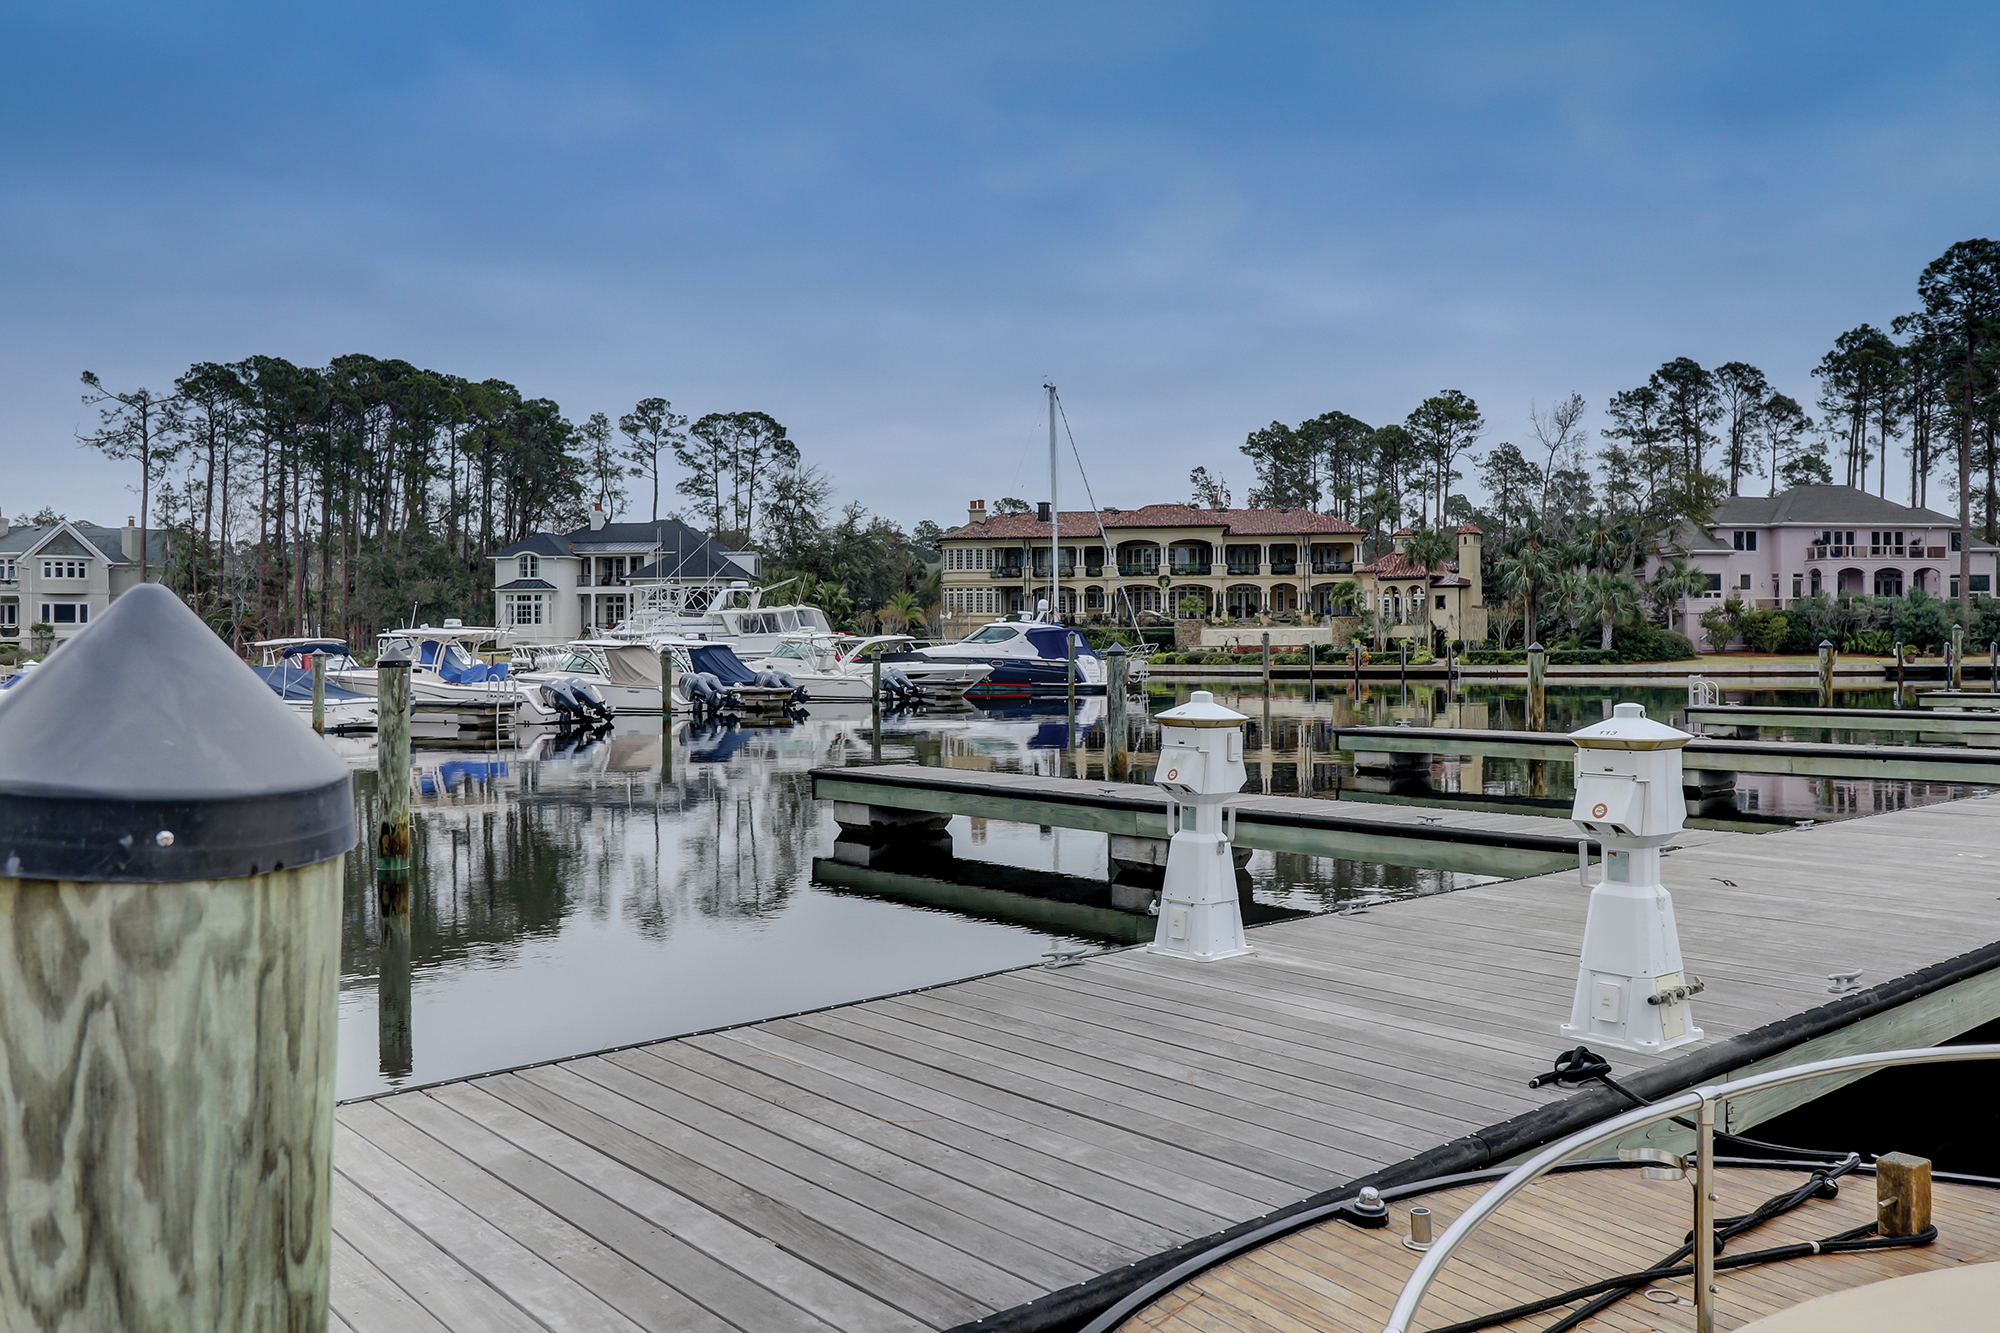 Wexford Inland Harbour located on Hilton Head Island